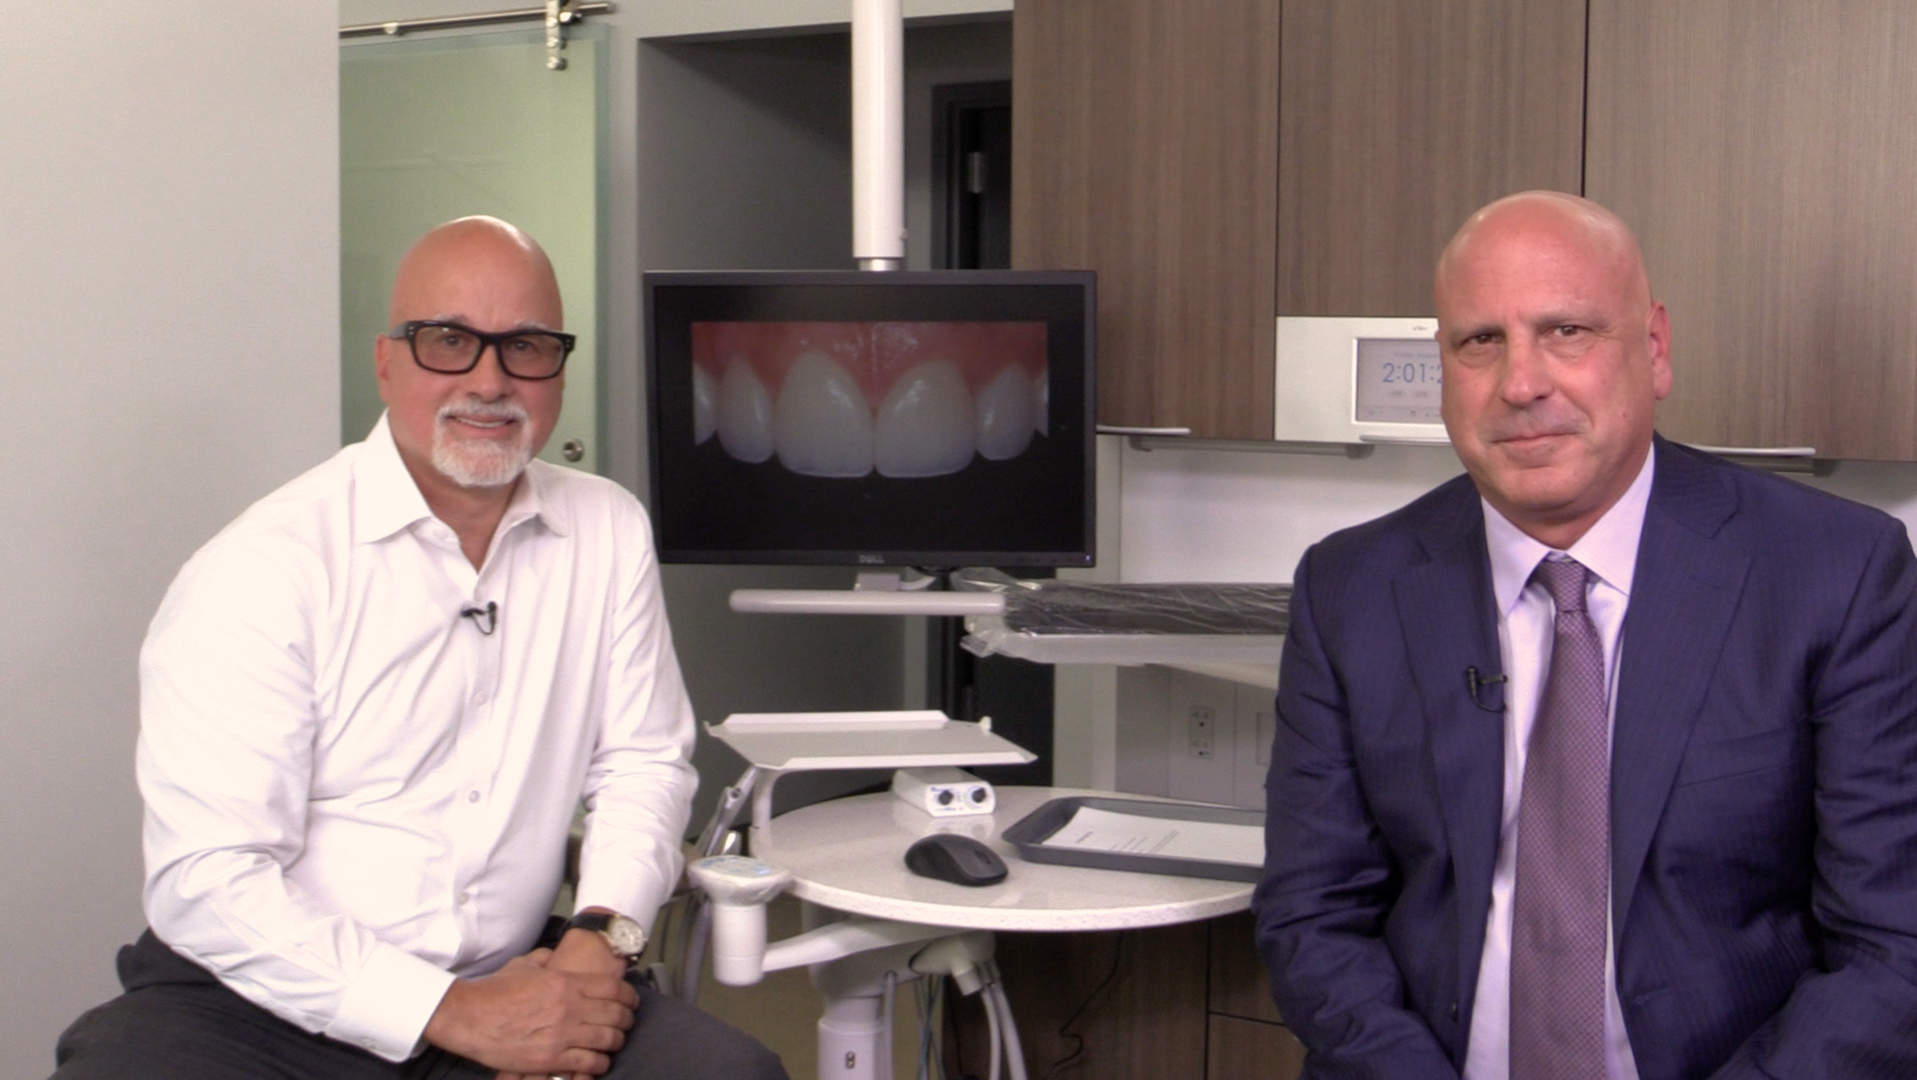 Robert Margeas, DDS - DenMat Lab Services